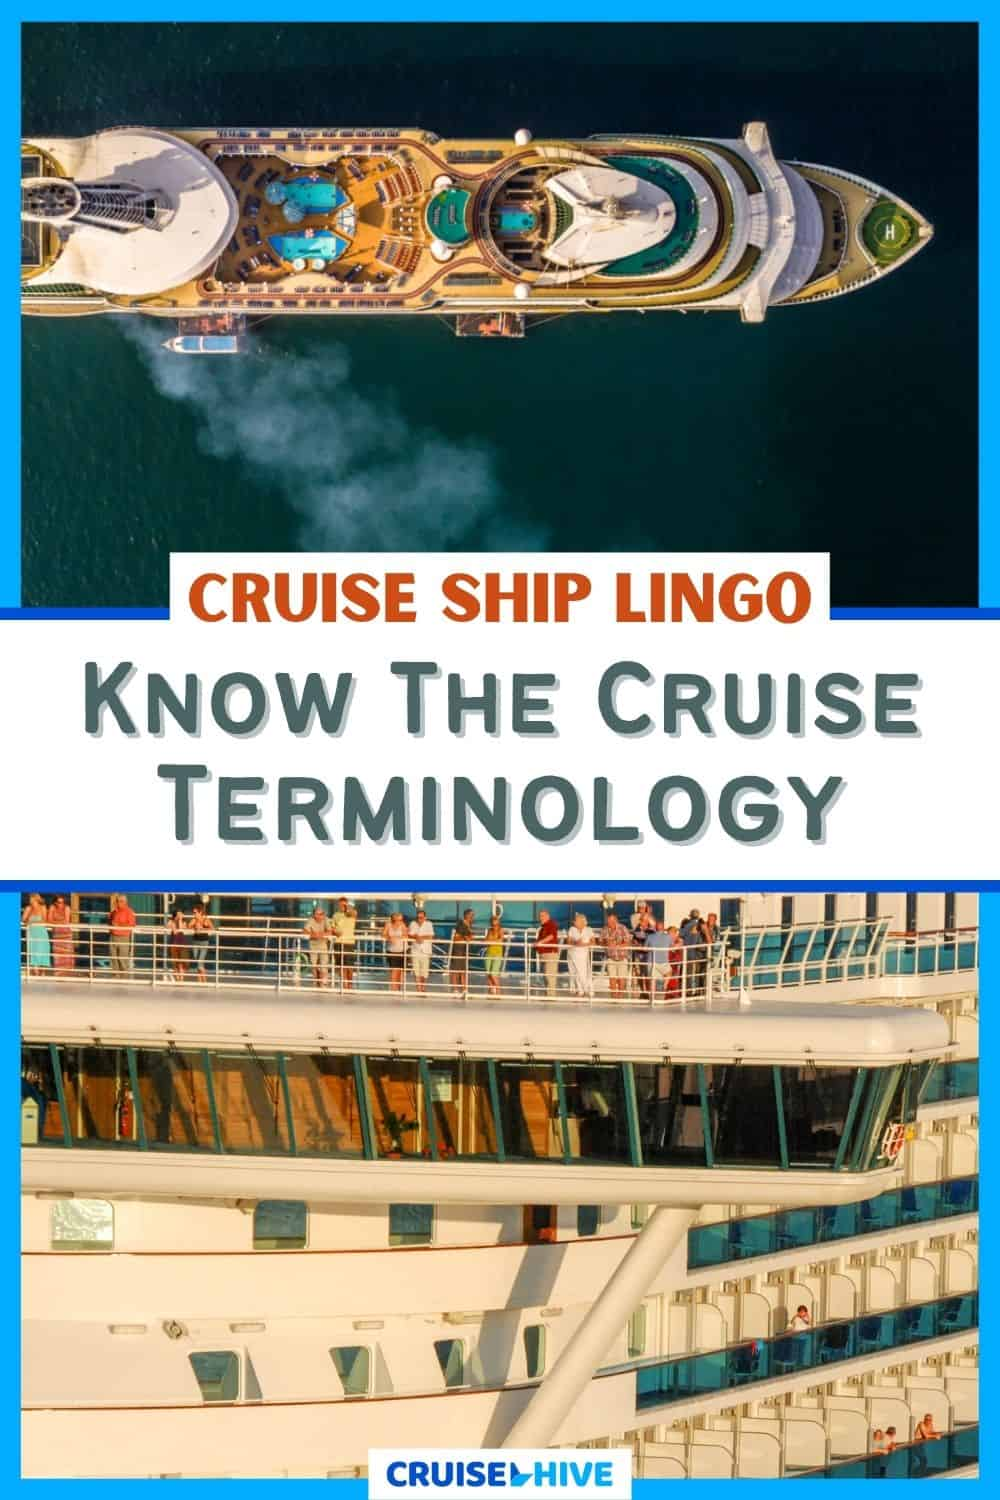 Cruise Ship Lingo: Know the Cruise Terminology